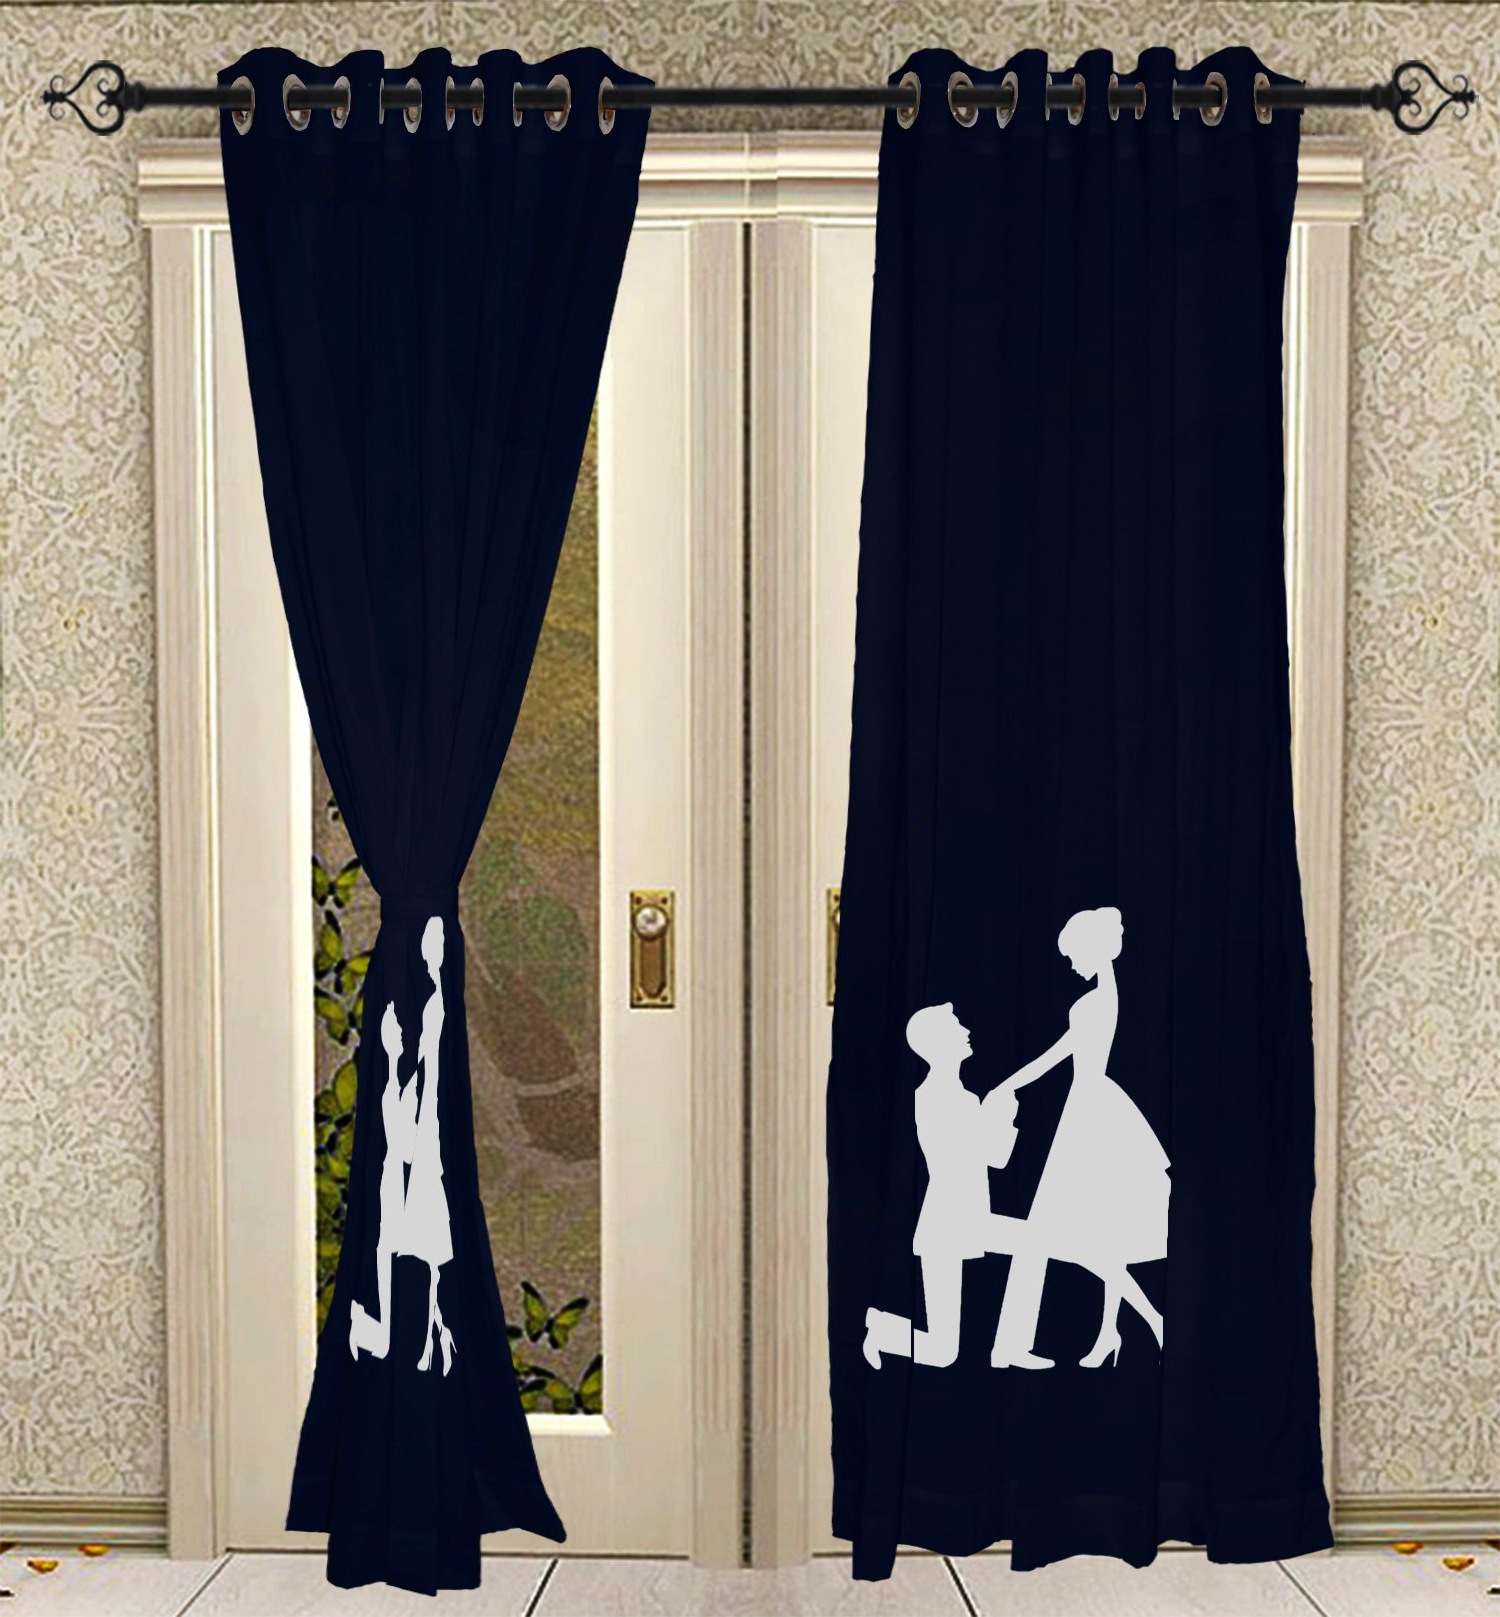 Popular Eyelet Hand Block Printed Curtain Panels For Living Room Solid Cotton Blue Curtains 2 Pcs Panel Set Intended For Solid Cotton Curtain Panels (View 16 of 20)